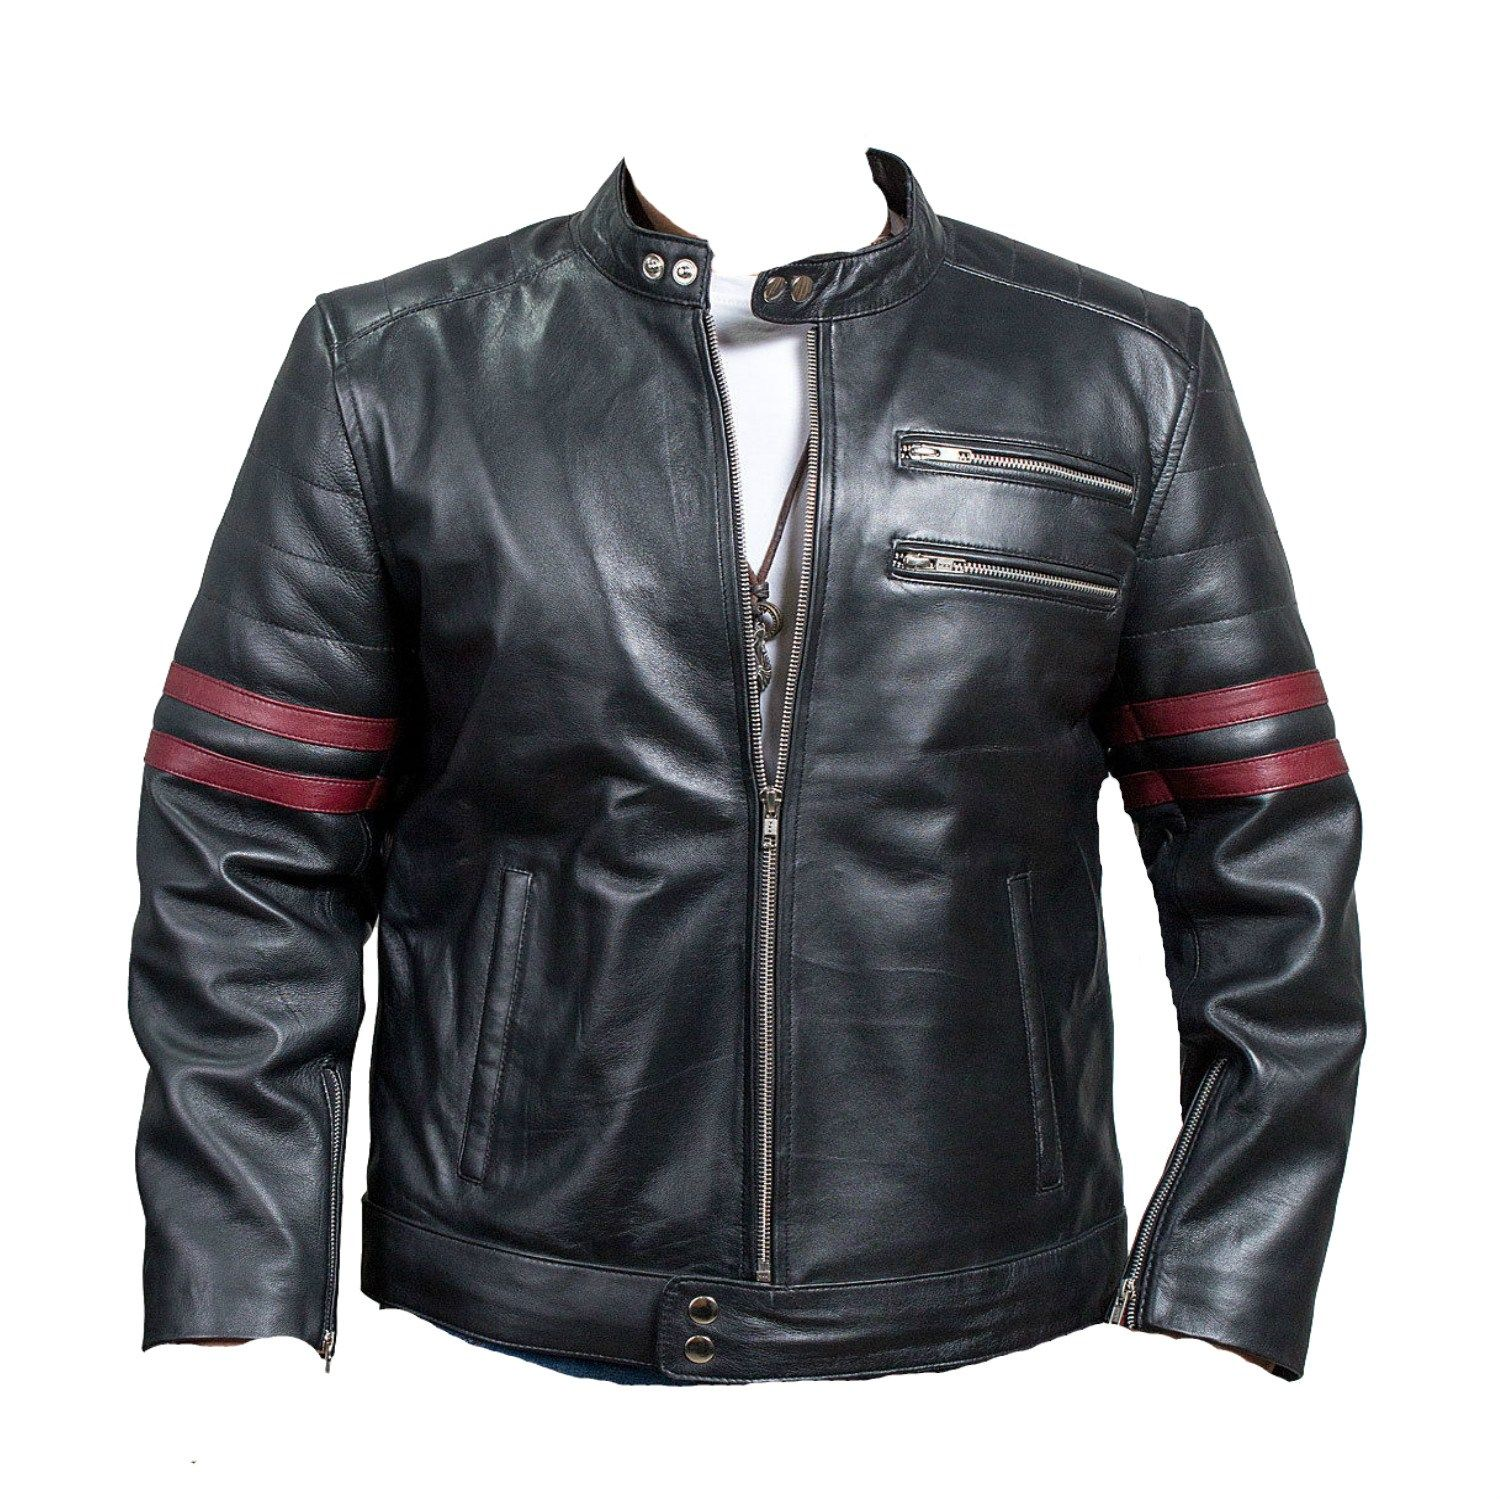 Men's Brando Classic Biker Black And White Motorcycle